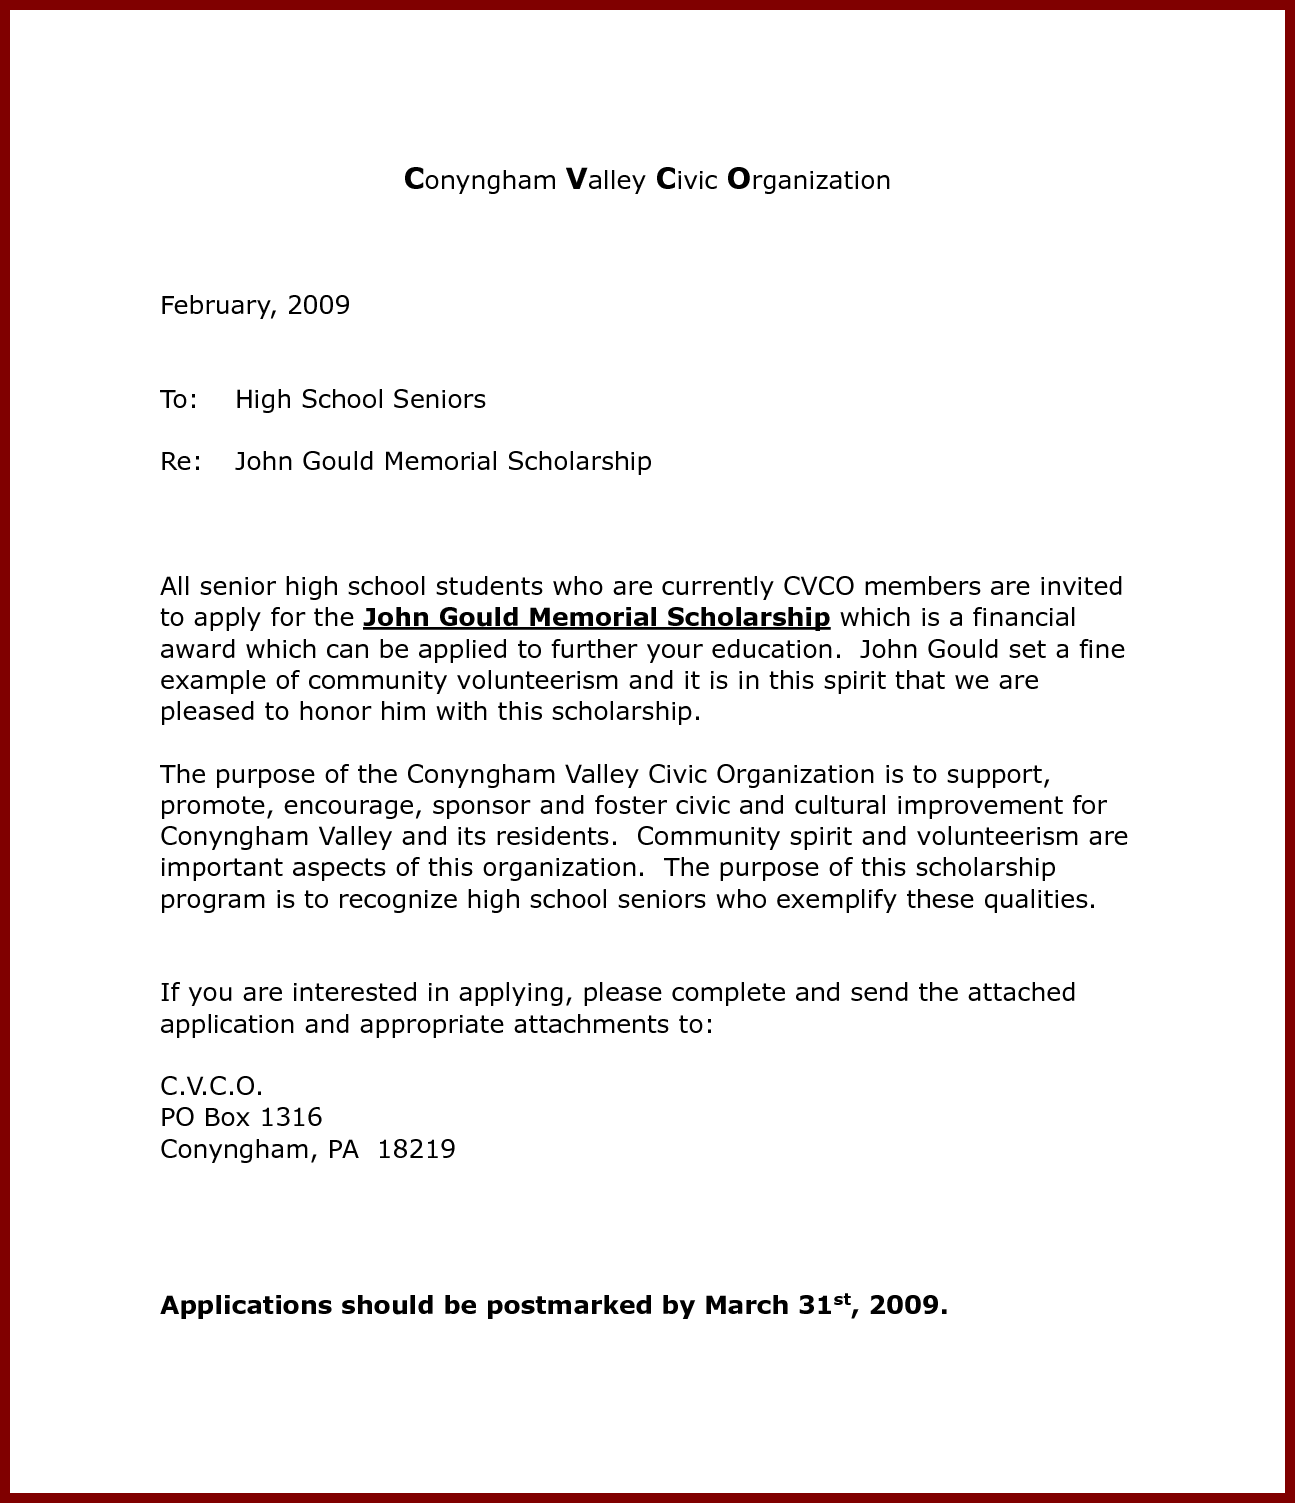 sample cover letters for government jobs letter samples - Cover Letters For Government Jobs